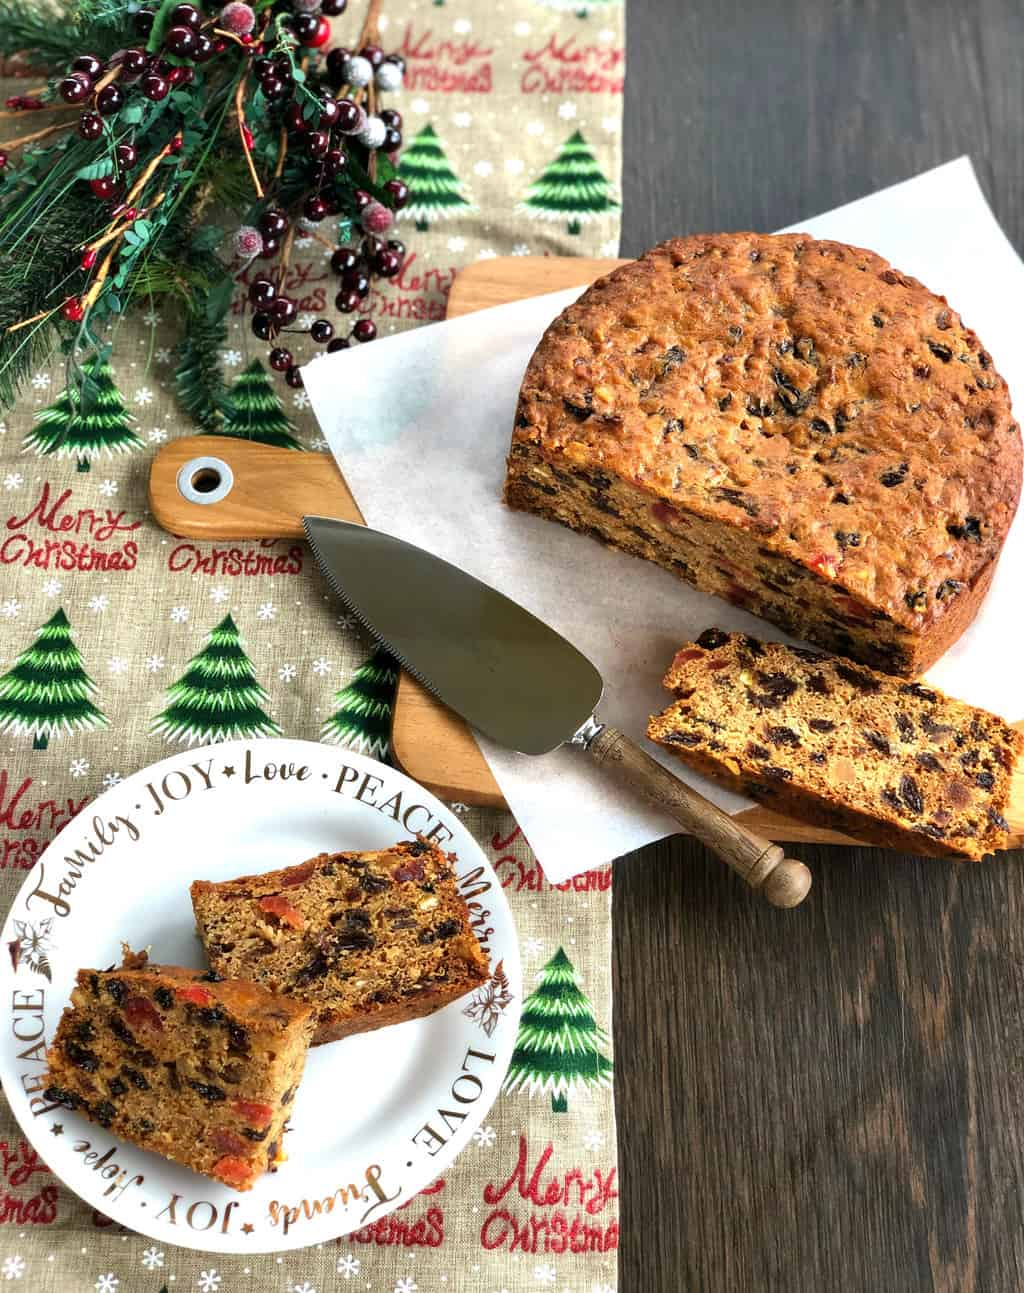 How to Slice Christmas Cake